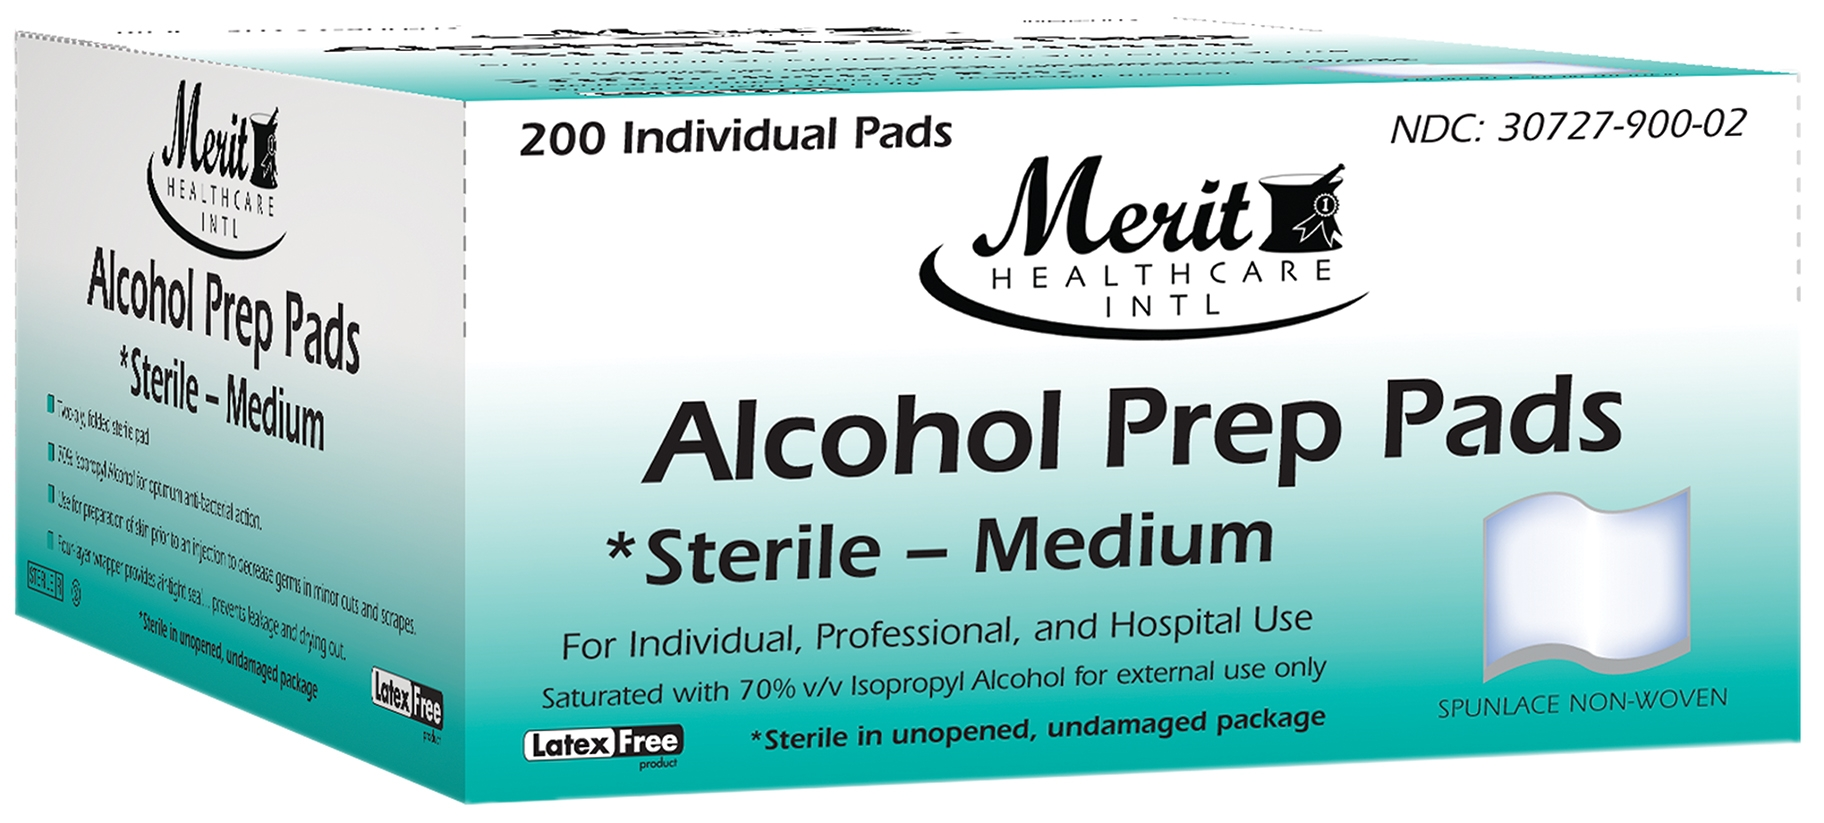 Alcohol Prep Pad, Isopropyl Alcohol, 70%, Individual Packet, Medium, Sterile, 200/BX